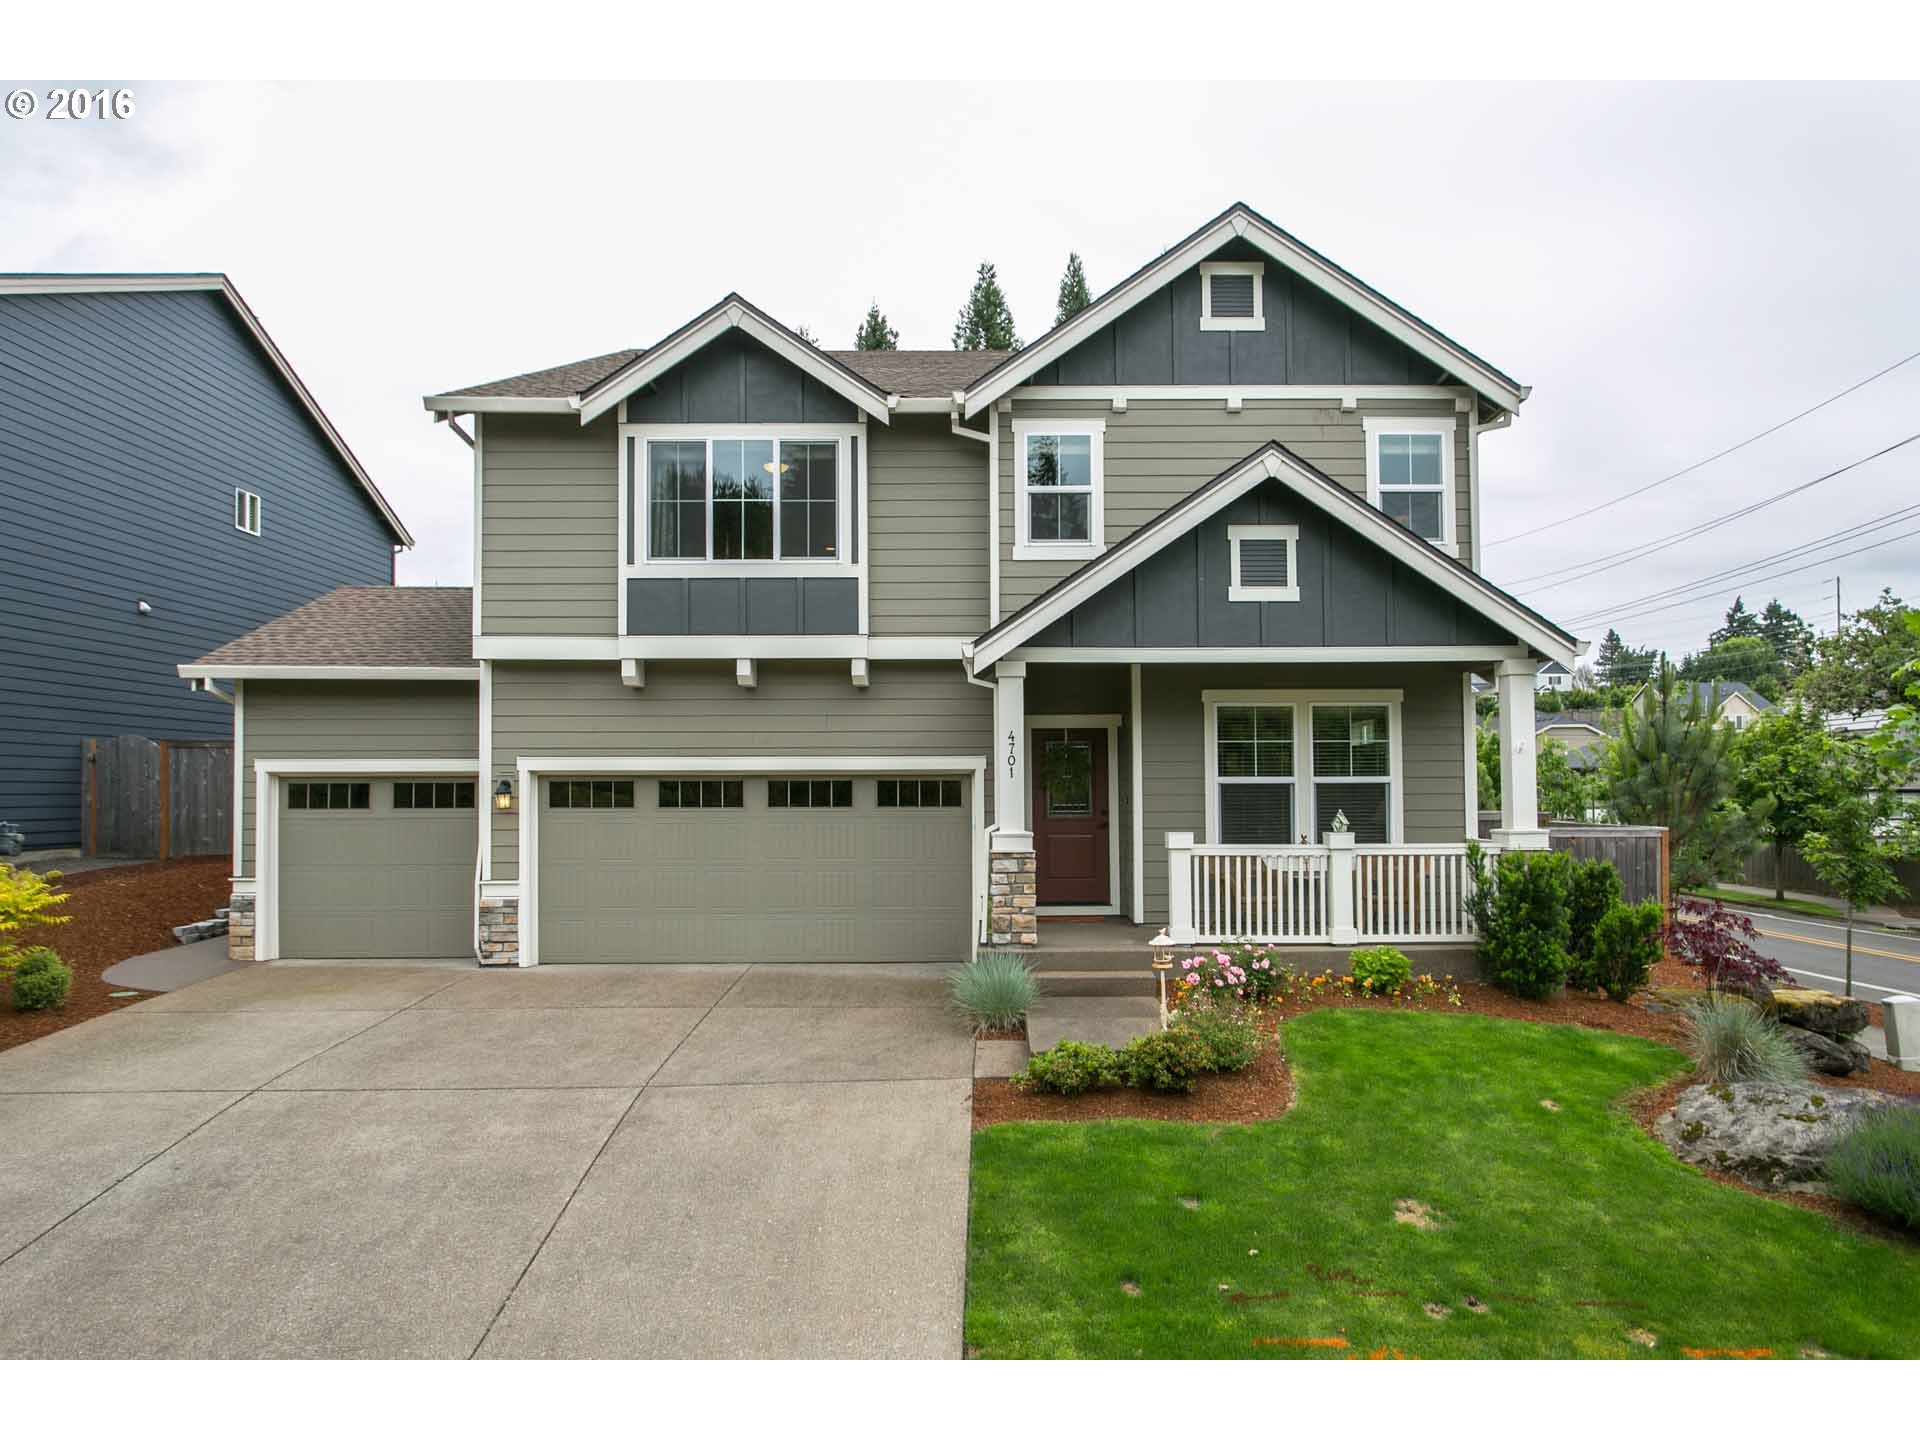 4701 CHINOOK CT, West Linn, OR 97068